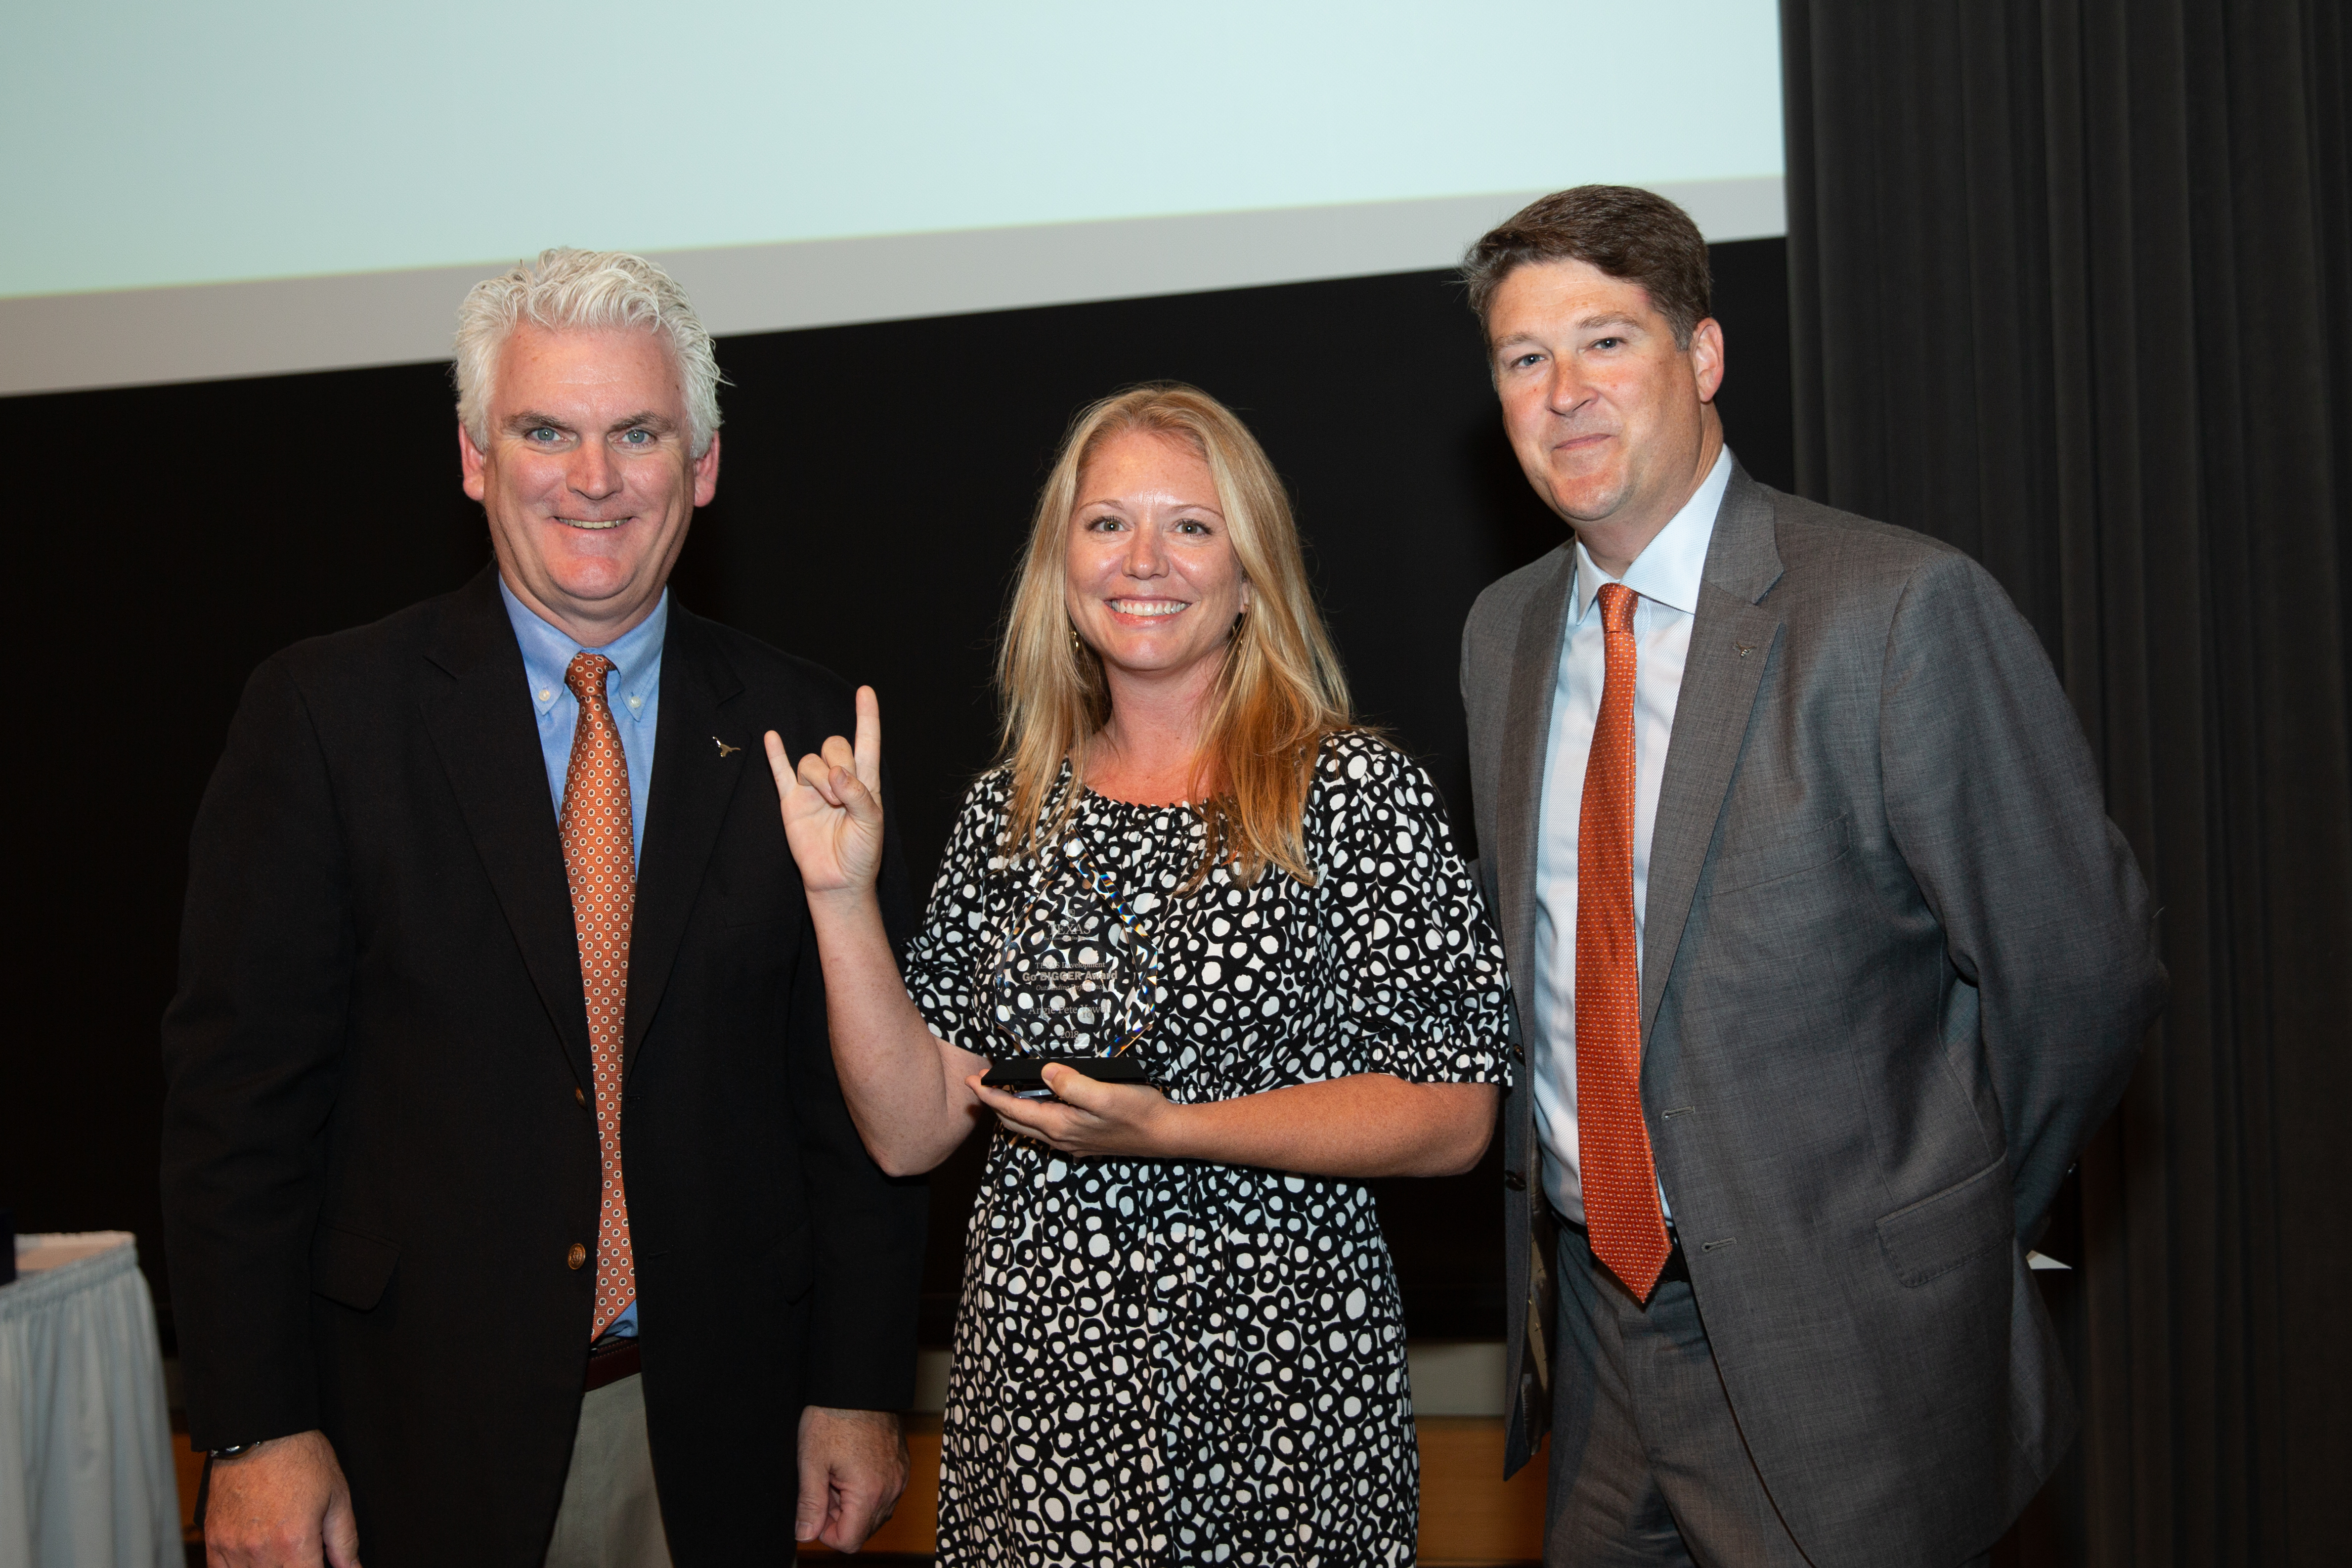 Angie Pete Yowell (MPAff '08) is honored by TEXAS Development at the 2018 Go BIGGER Awards